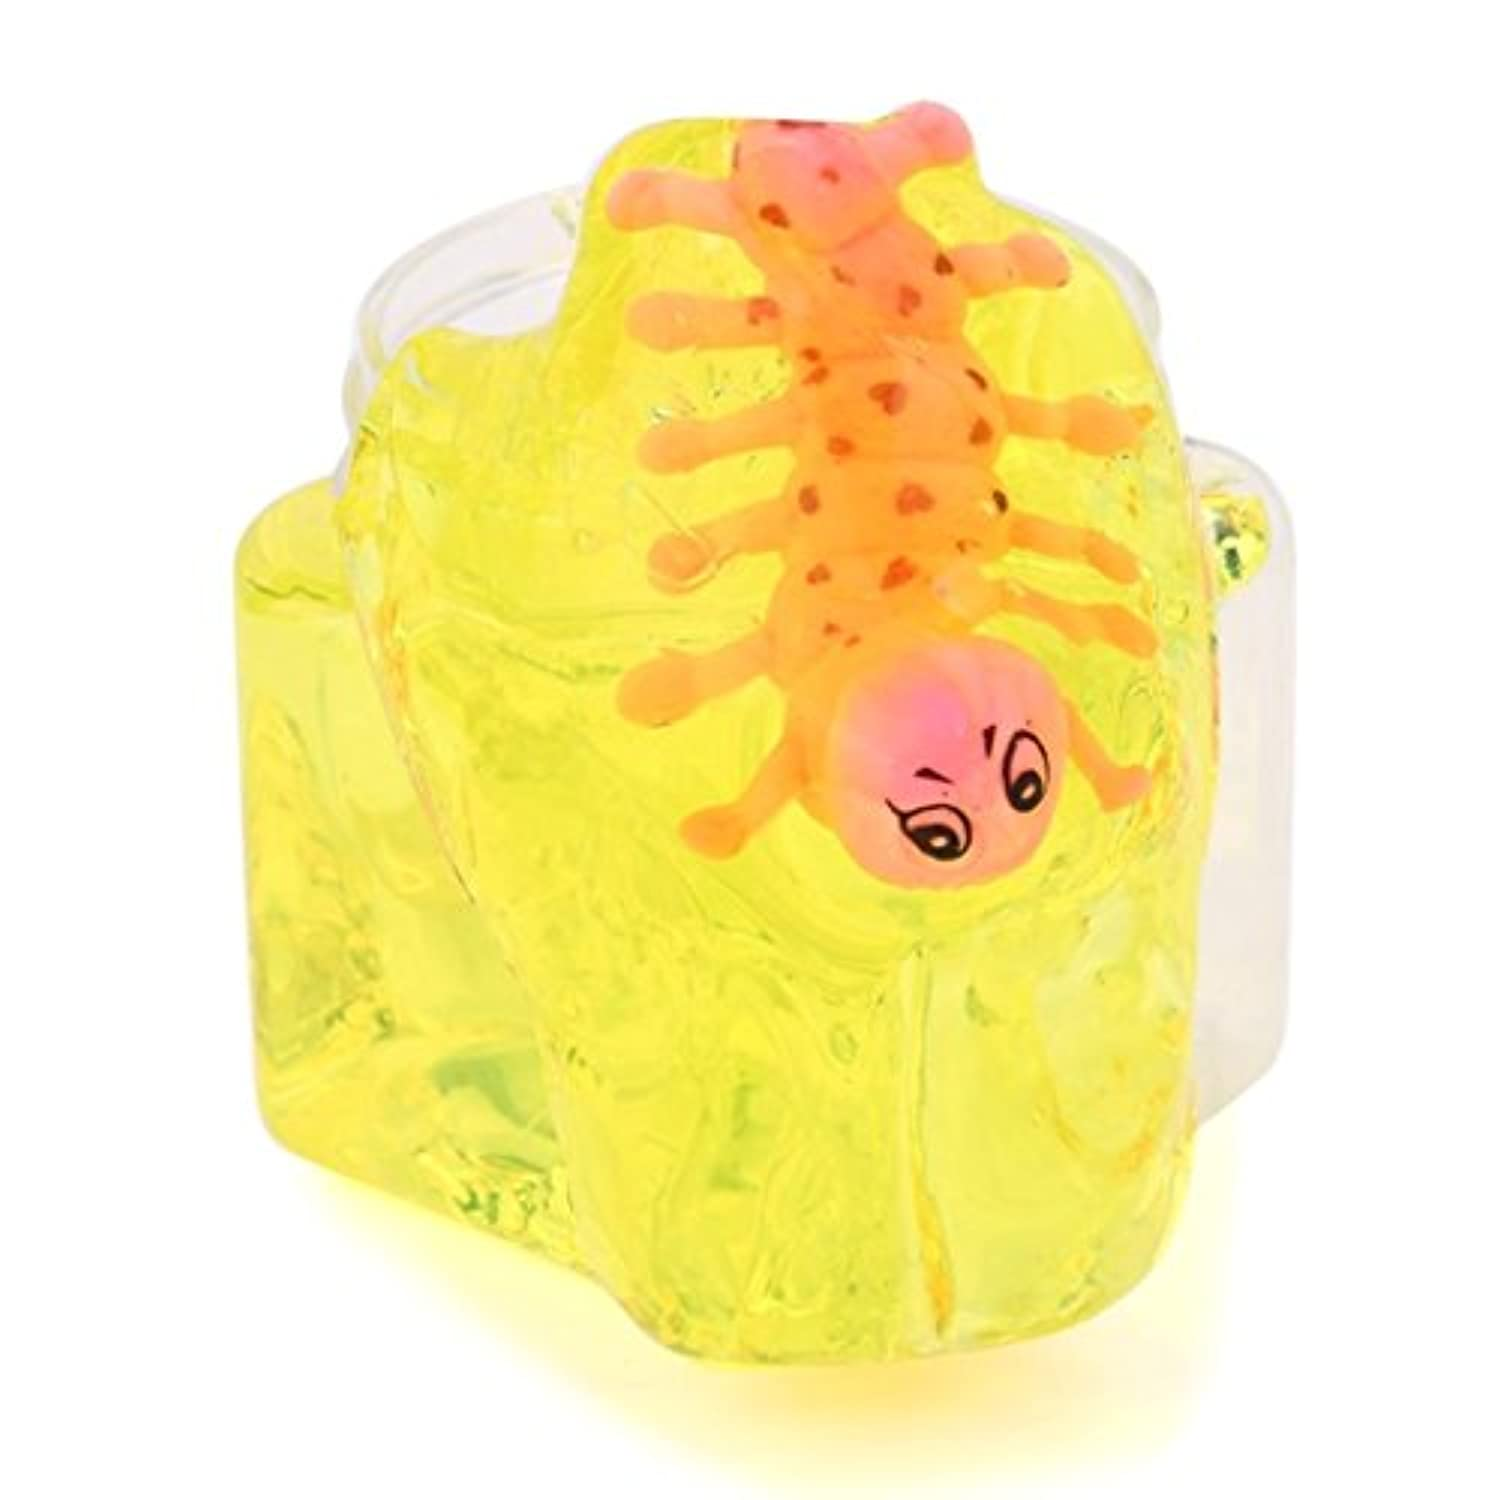 Makalon Insect Crysta Jelly Toy Soft Slime Scented Stress Relief Toy Fun Sludge Toys